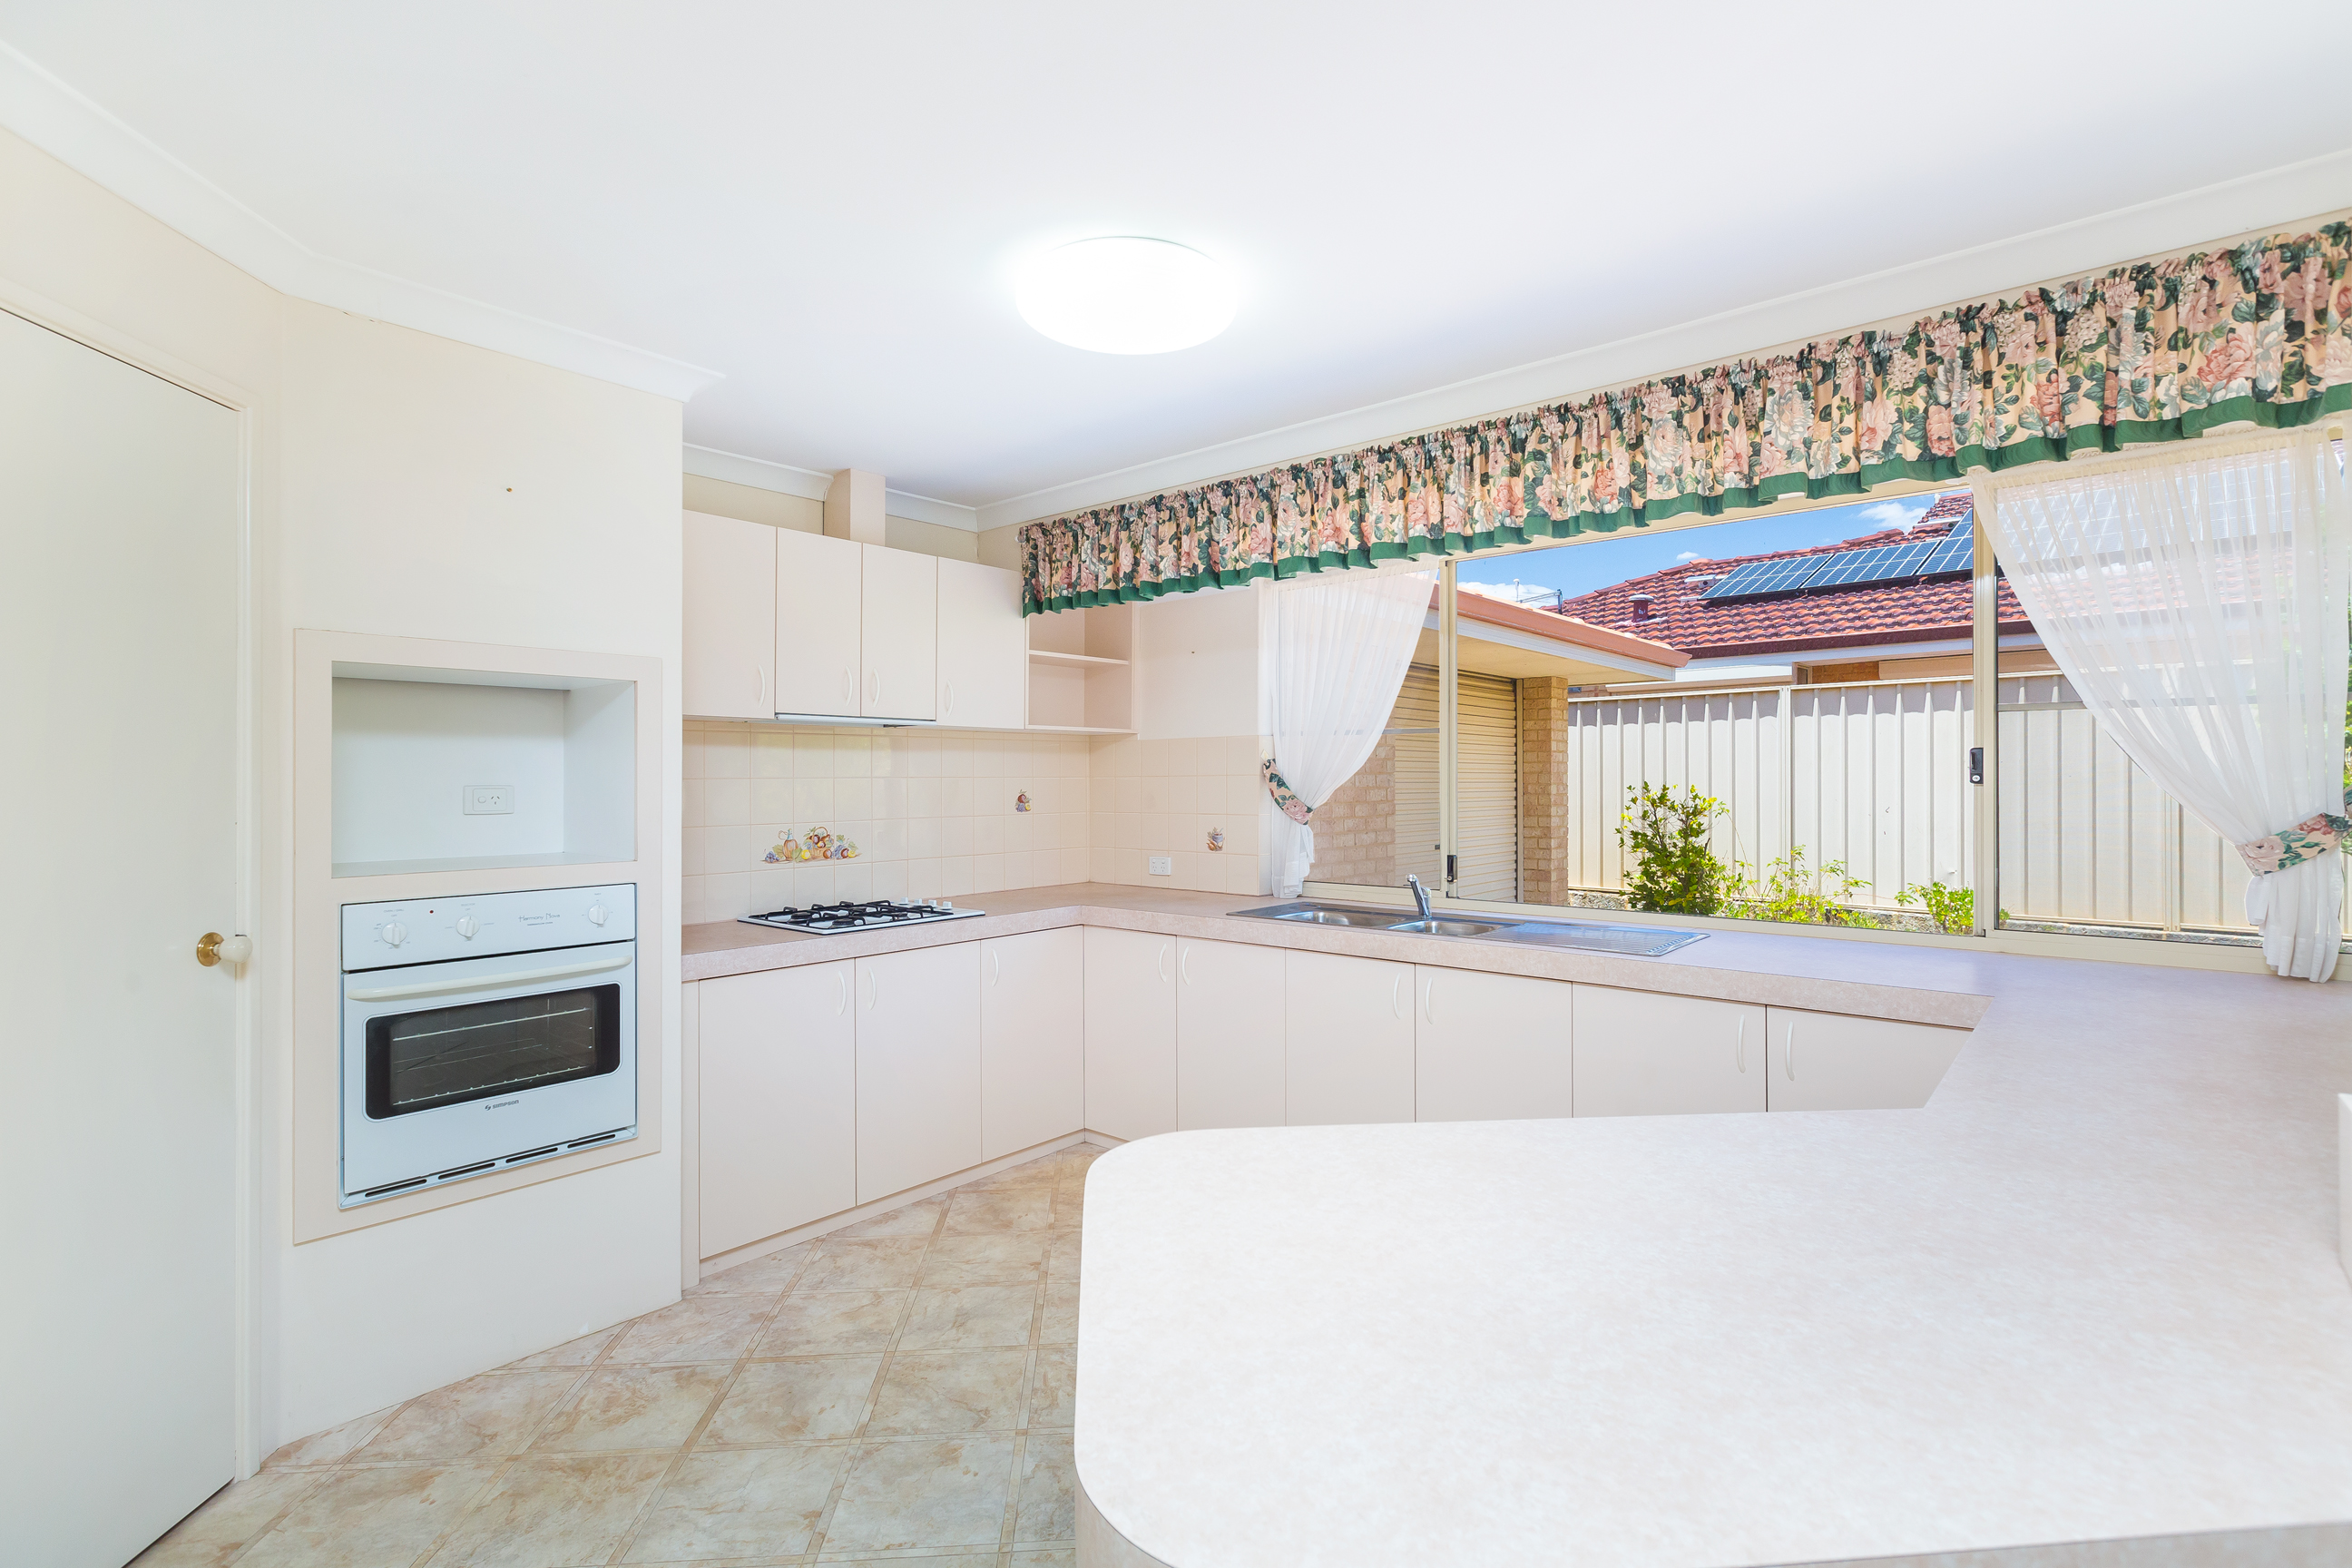 Property for sale in CANNING VALE, 16 Jilakin Loop : Attree Real Estate